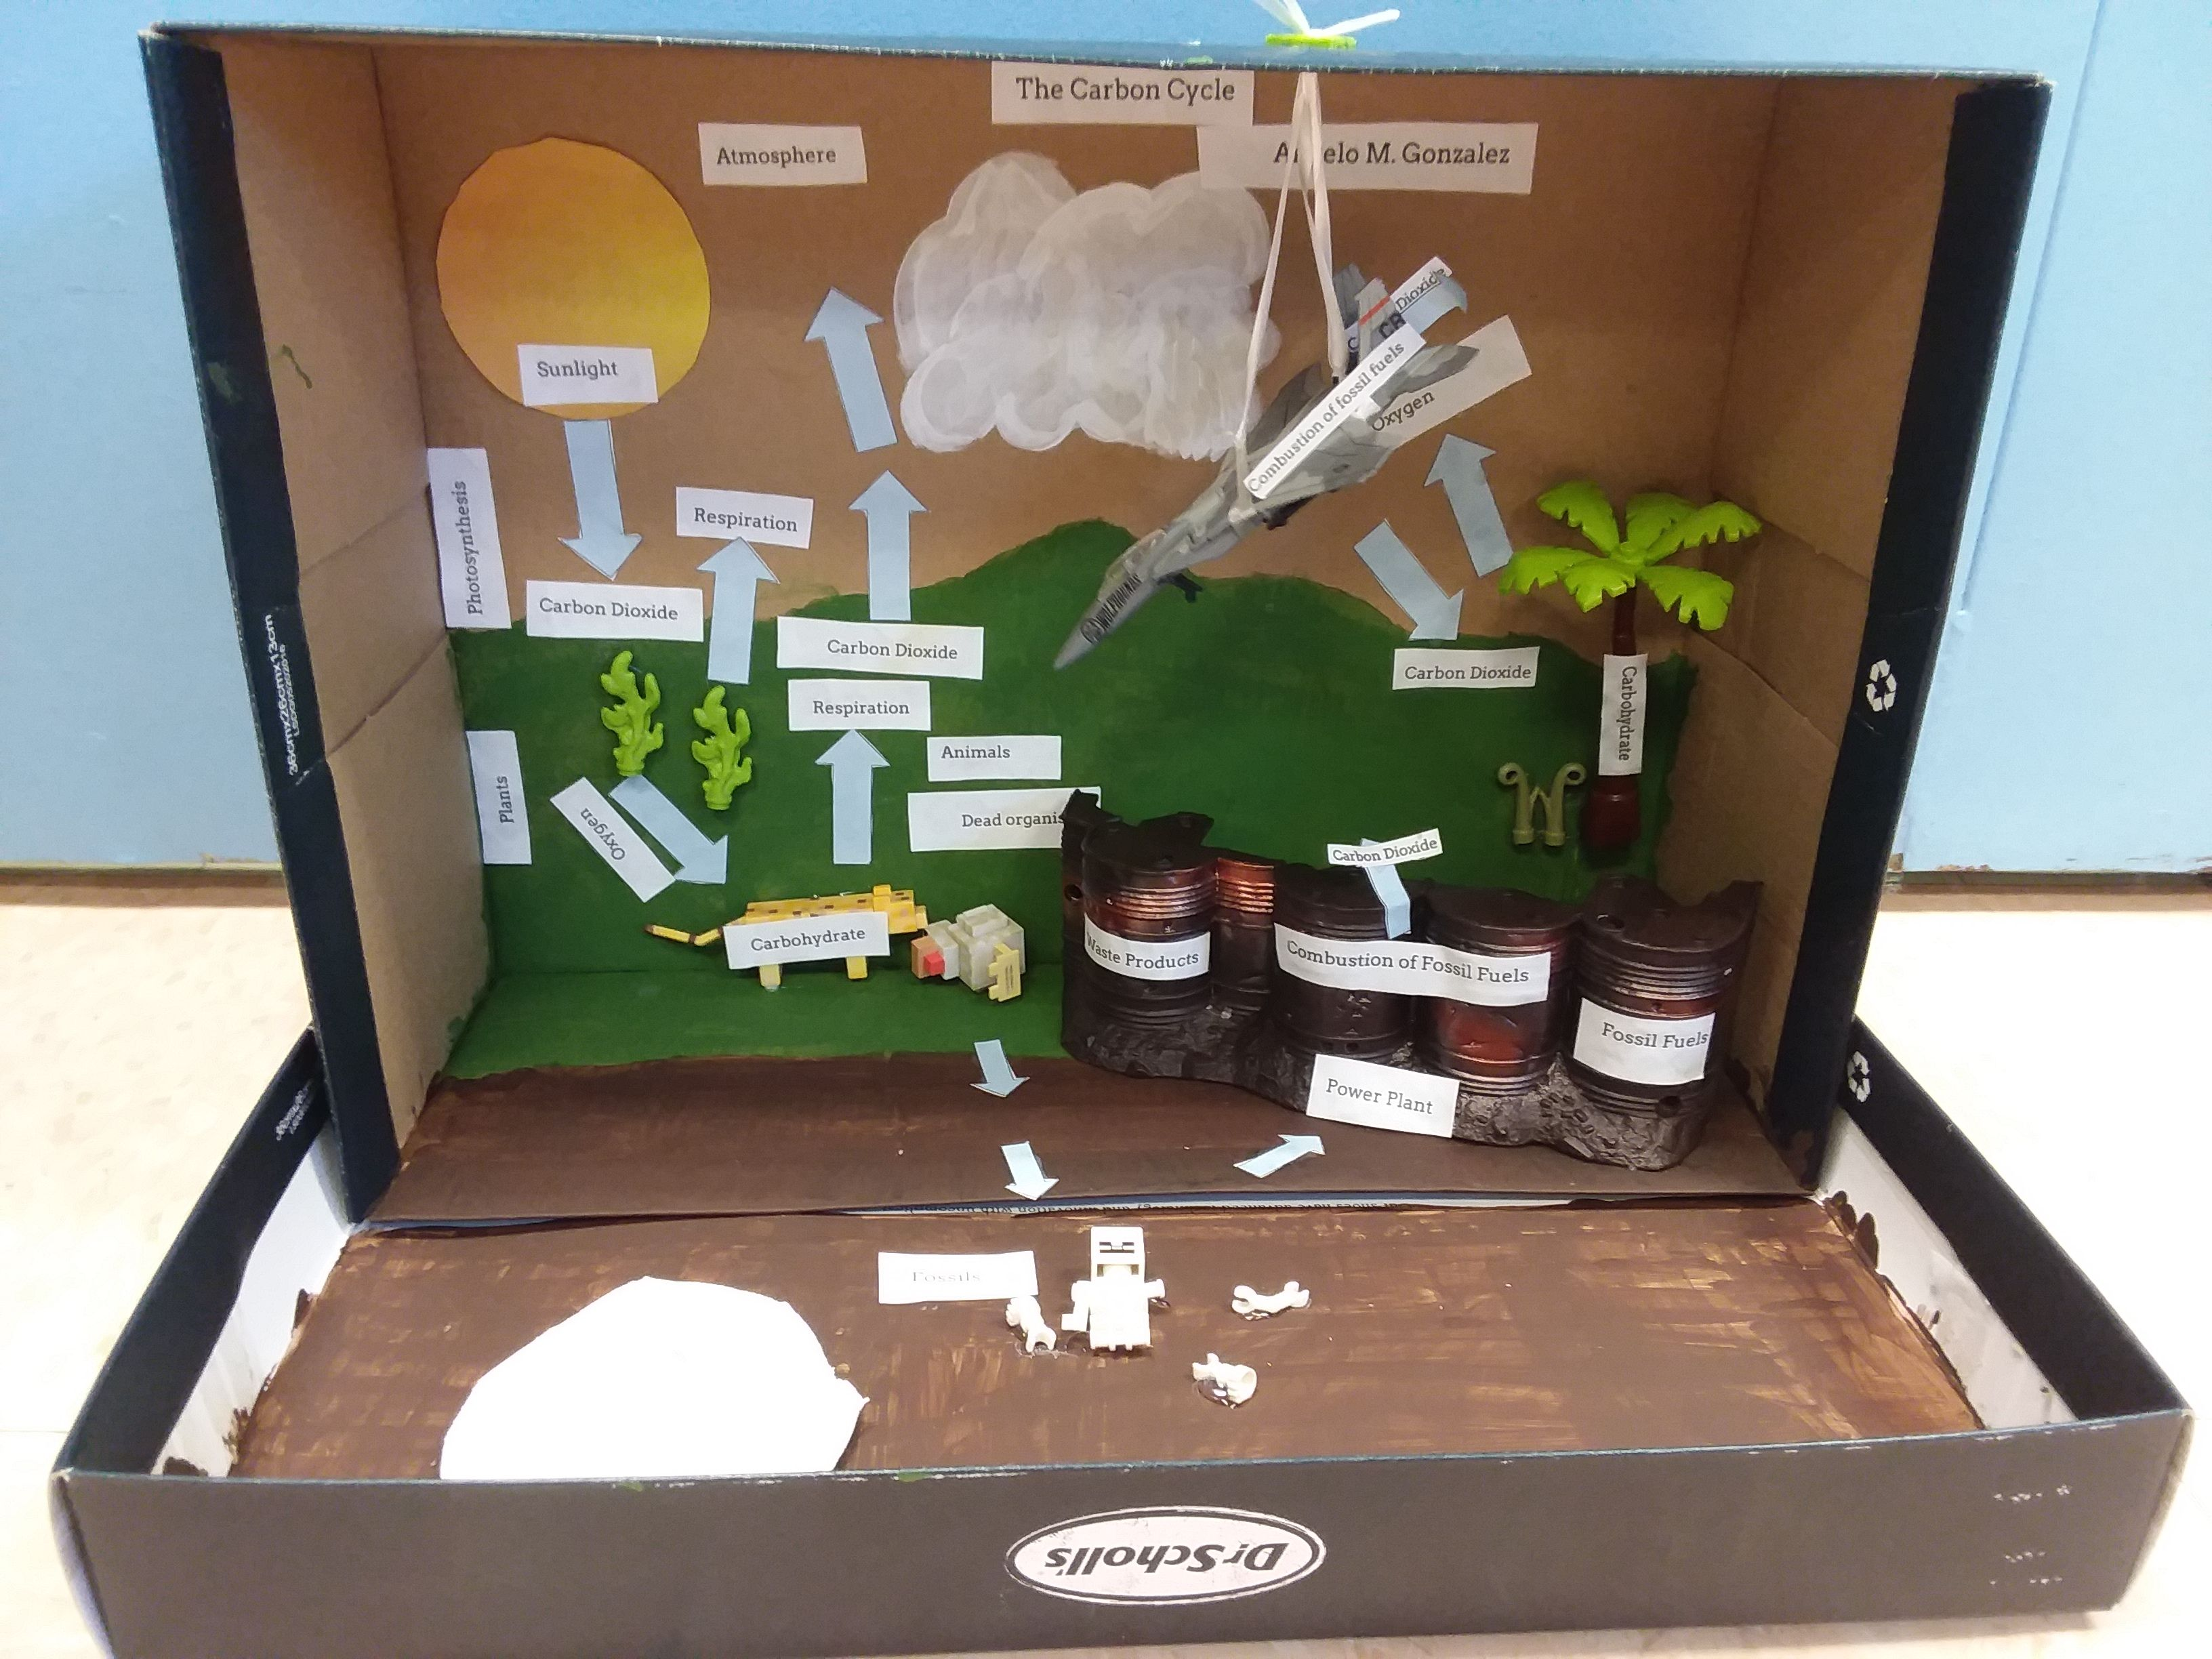 Ecosystem Project Photosynthesis Respiration Carbon